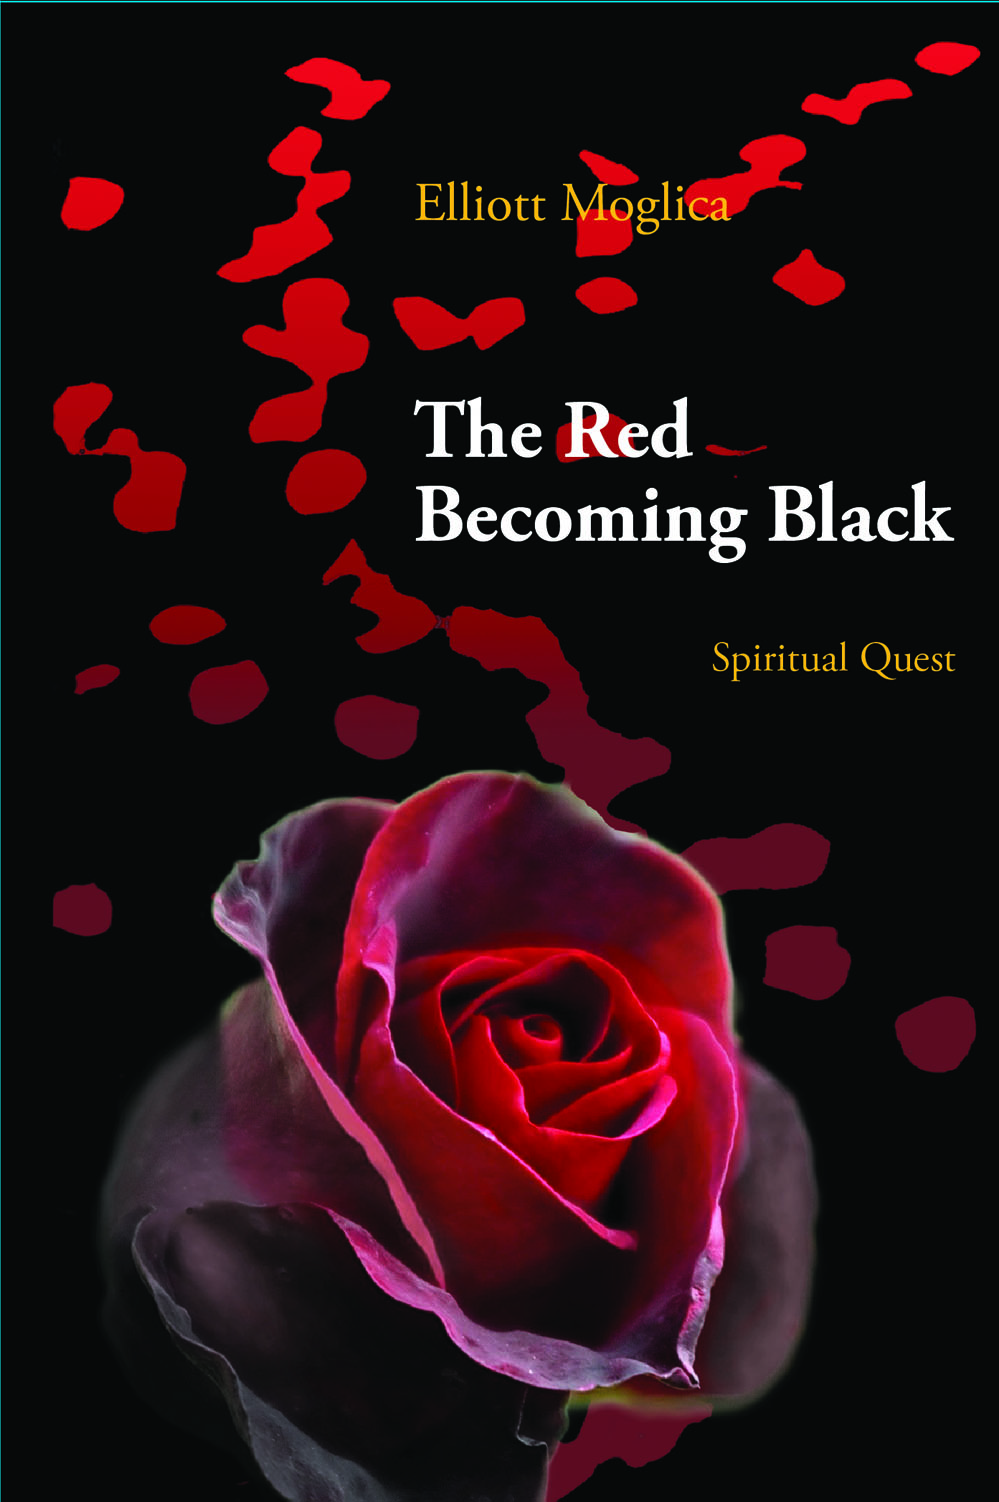 The Red Becoming Black